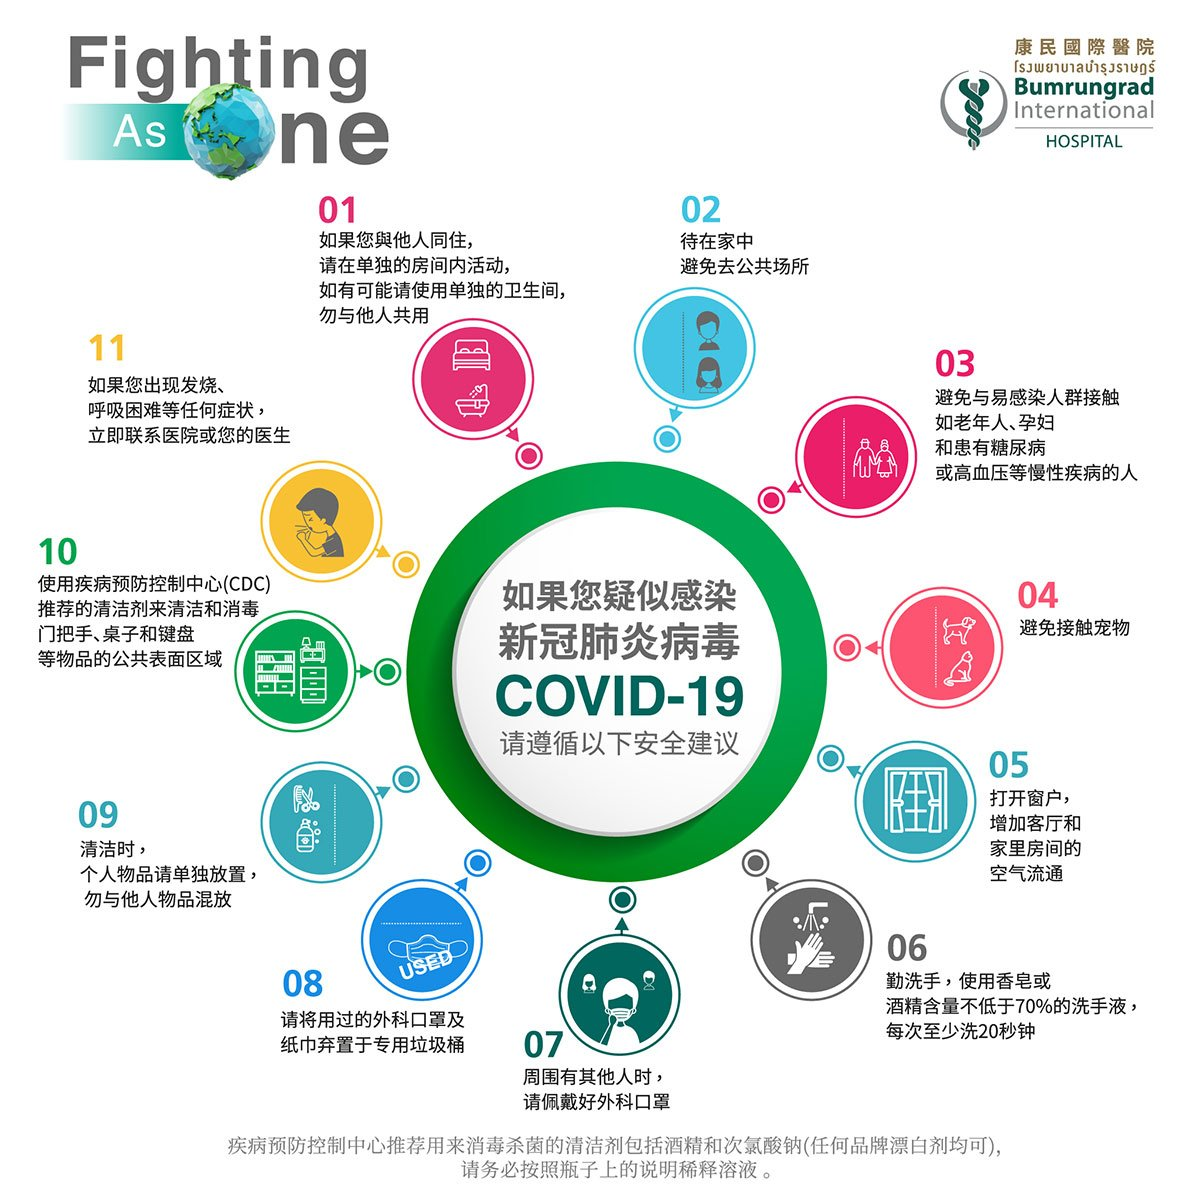 Website_Safety-advice-if-you-suspect-covid-19-infection_CN.jpg